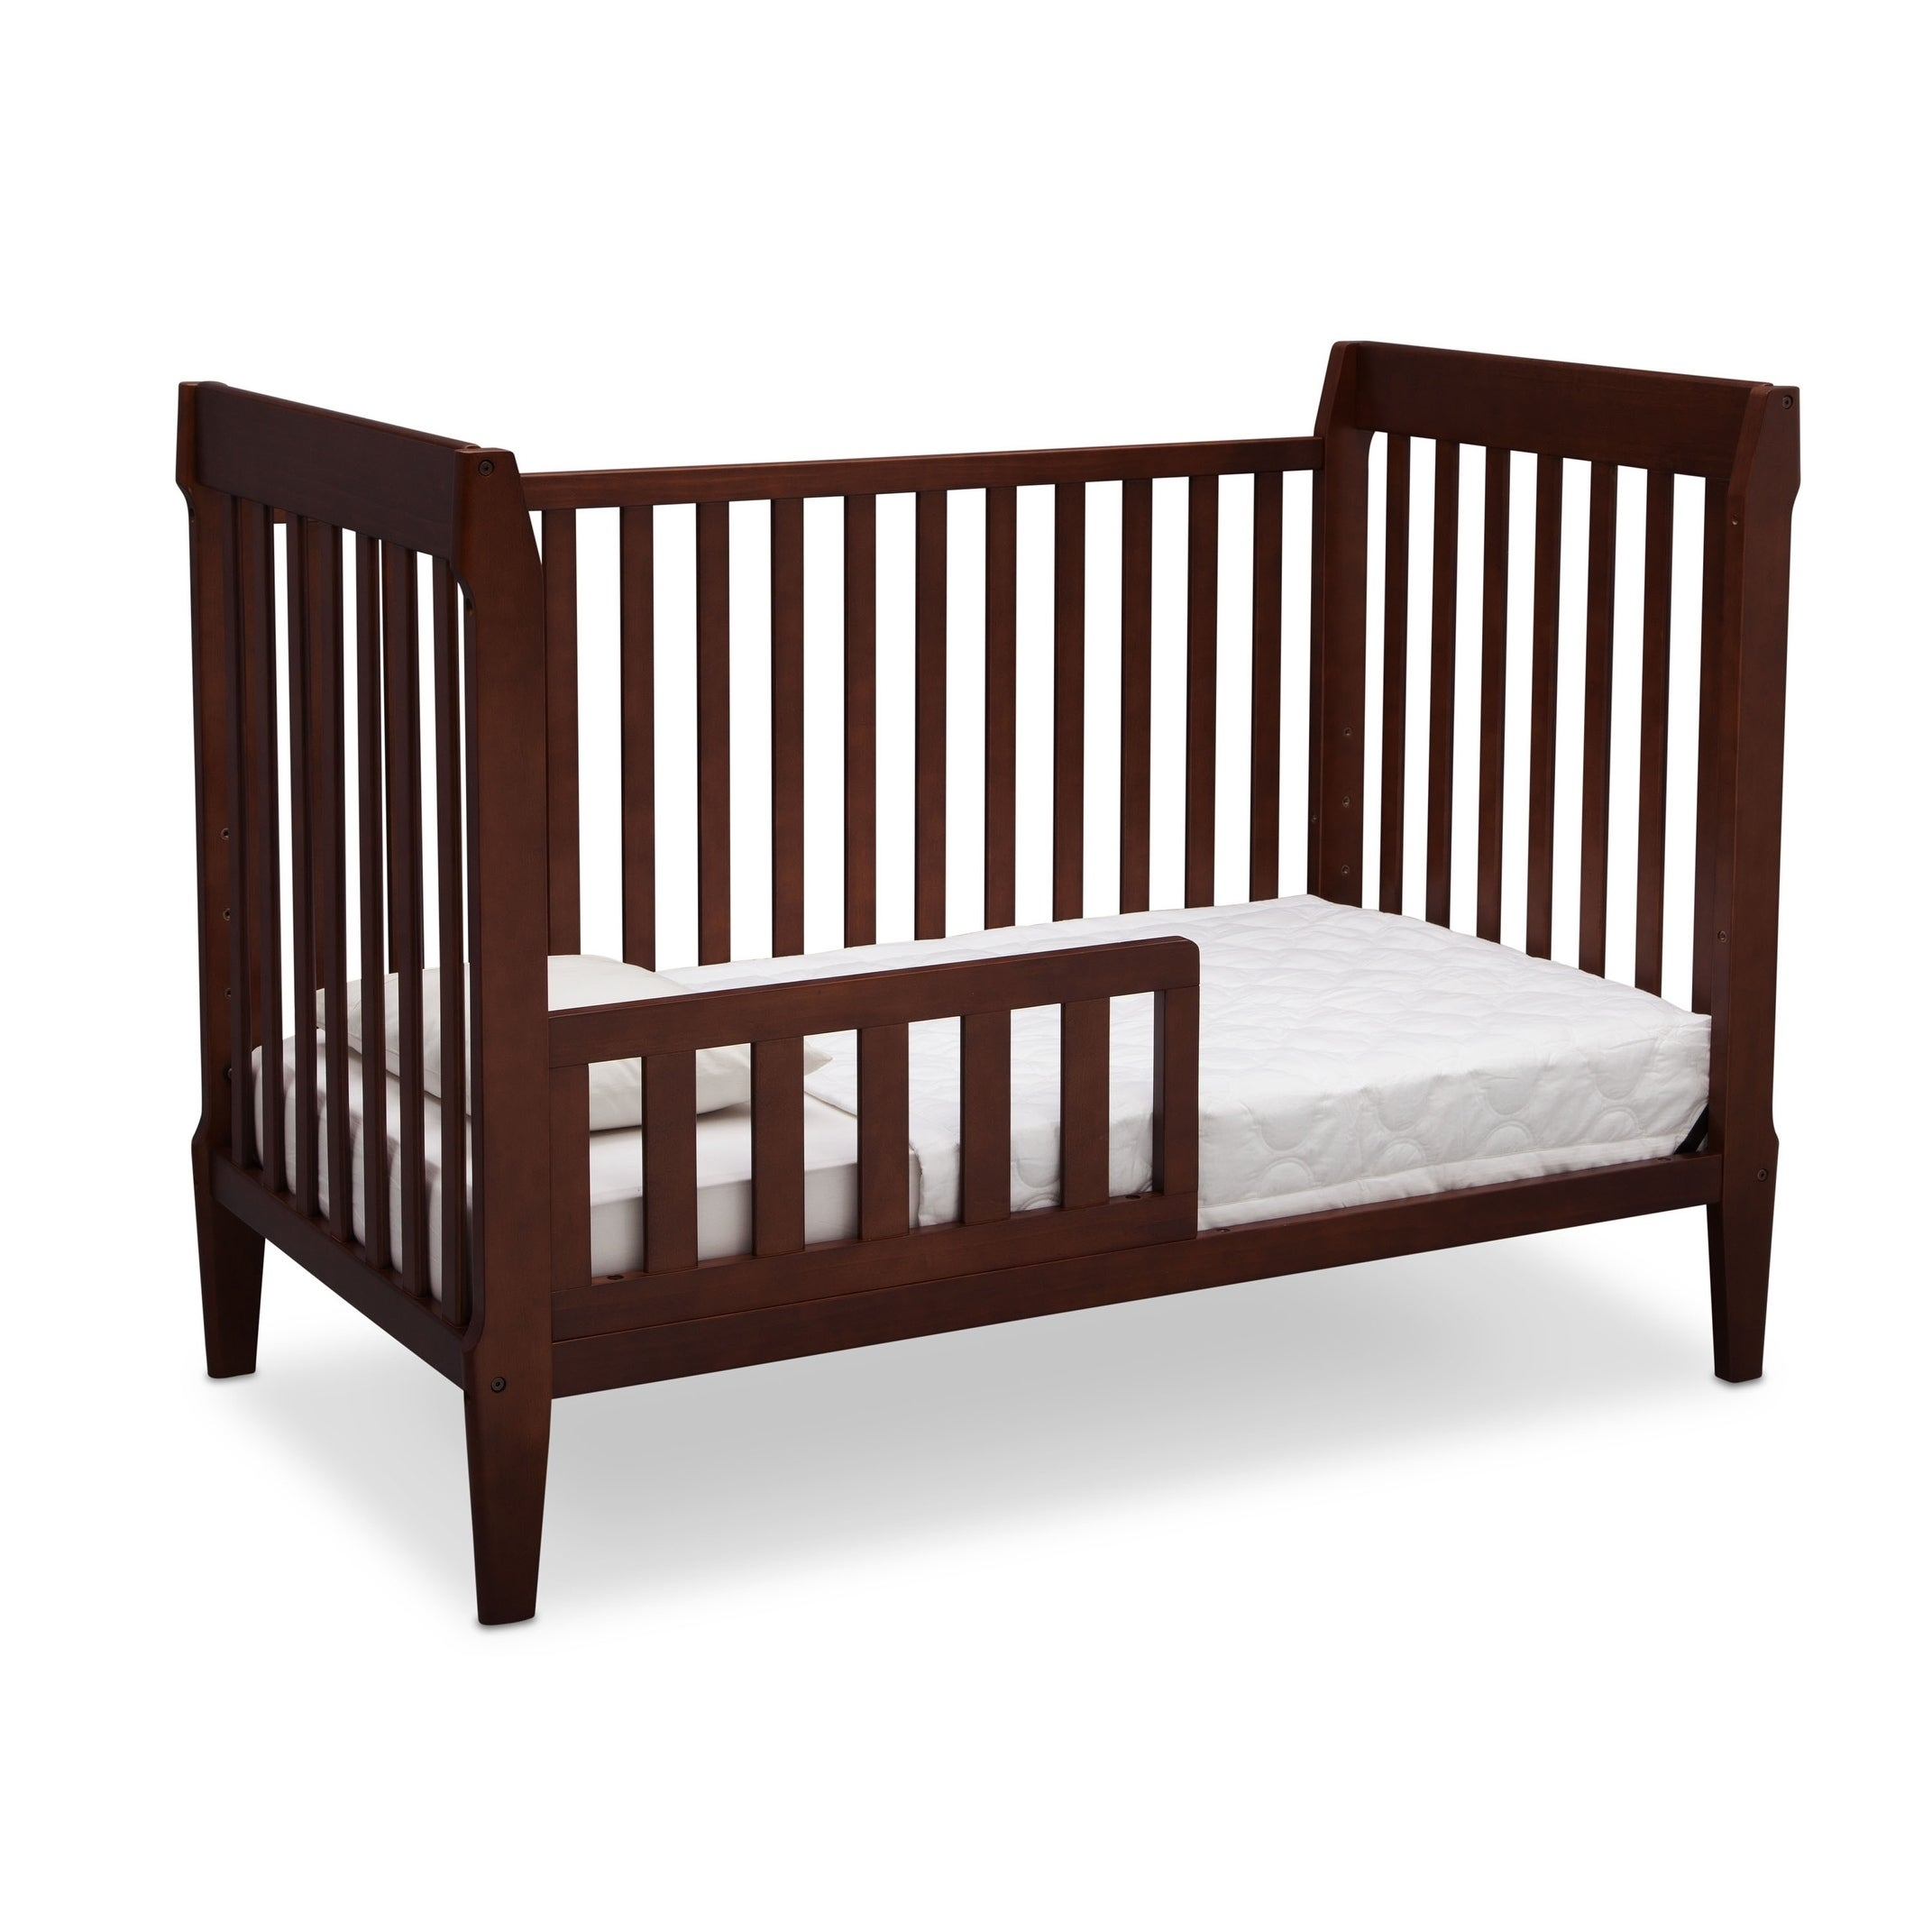 Serta Mid Century Modern Clic 5 In 1 Convertible Crib Free Shipping Today 17137680